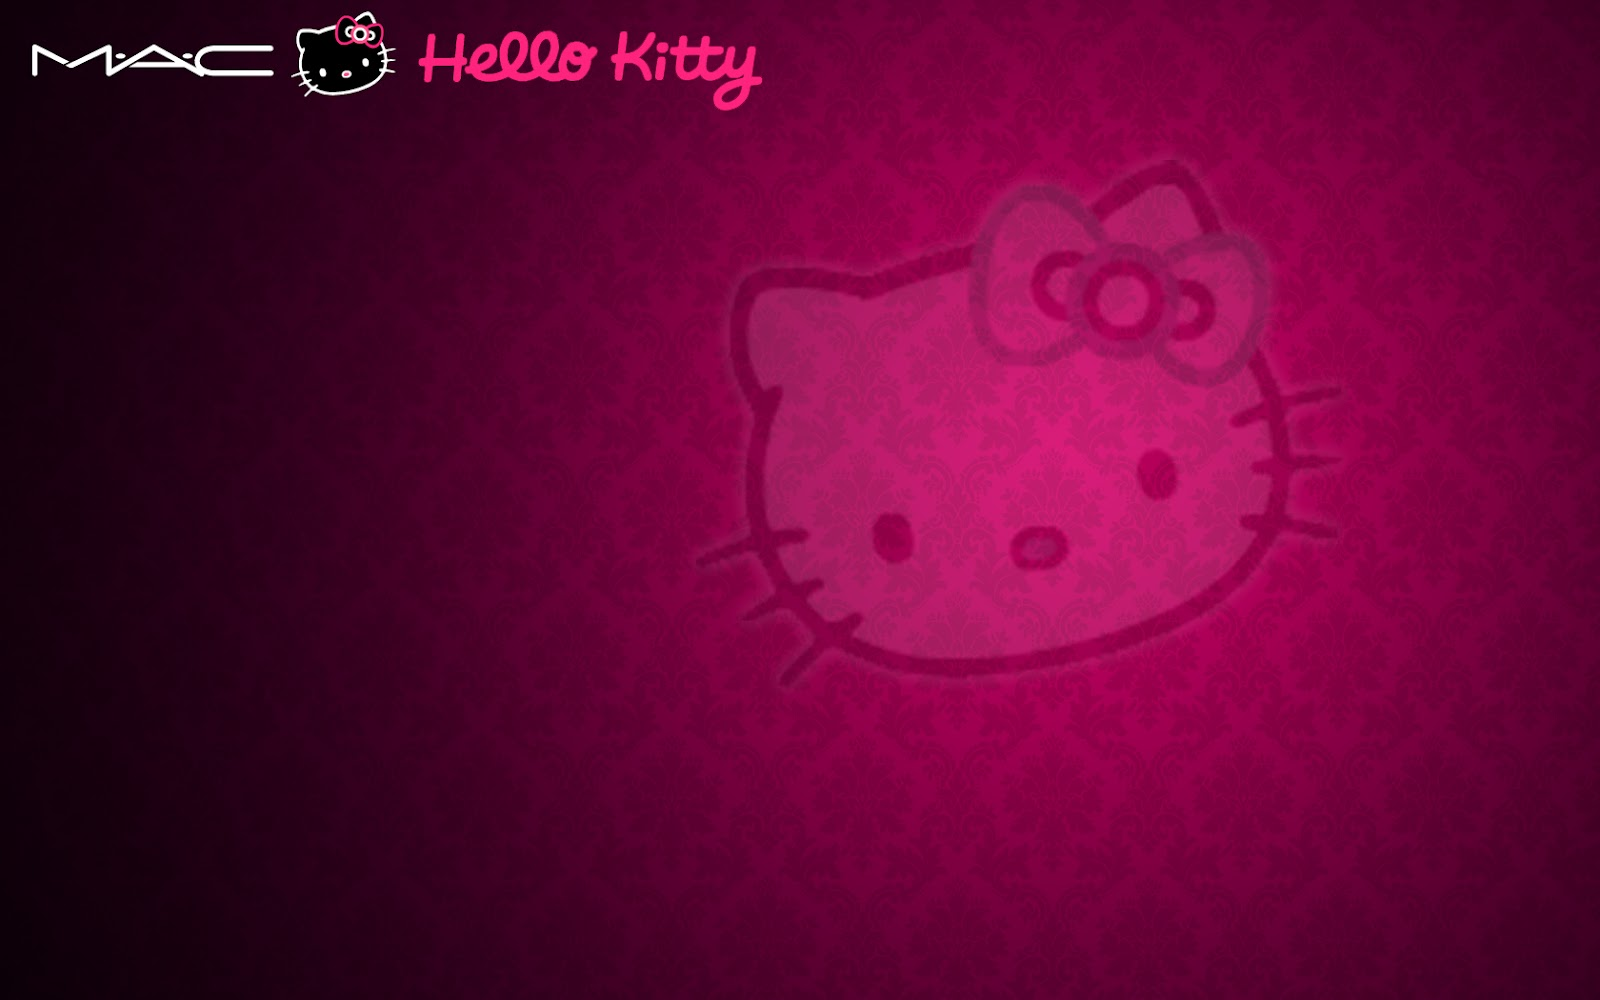 hello kitty wallpaper hello kitty wallpaper pink cute hello kitty 1600x1000